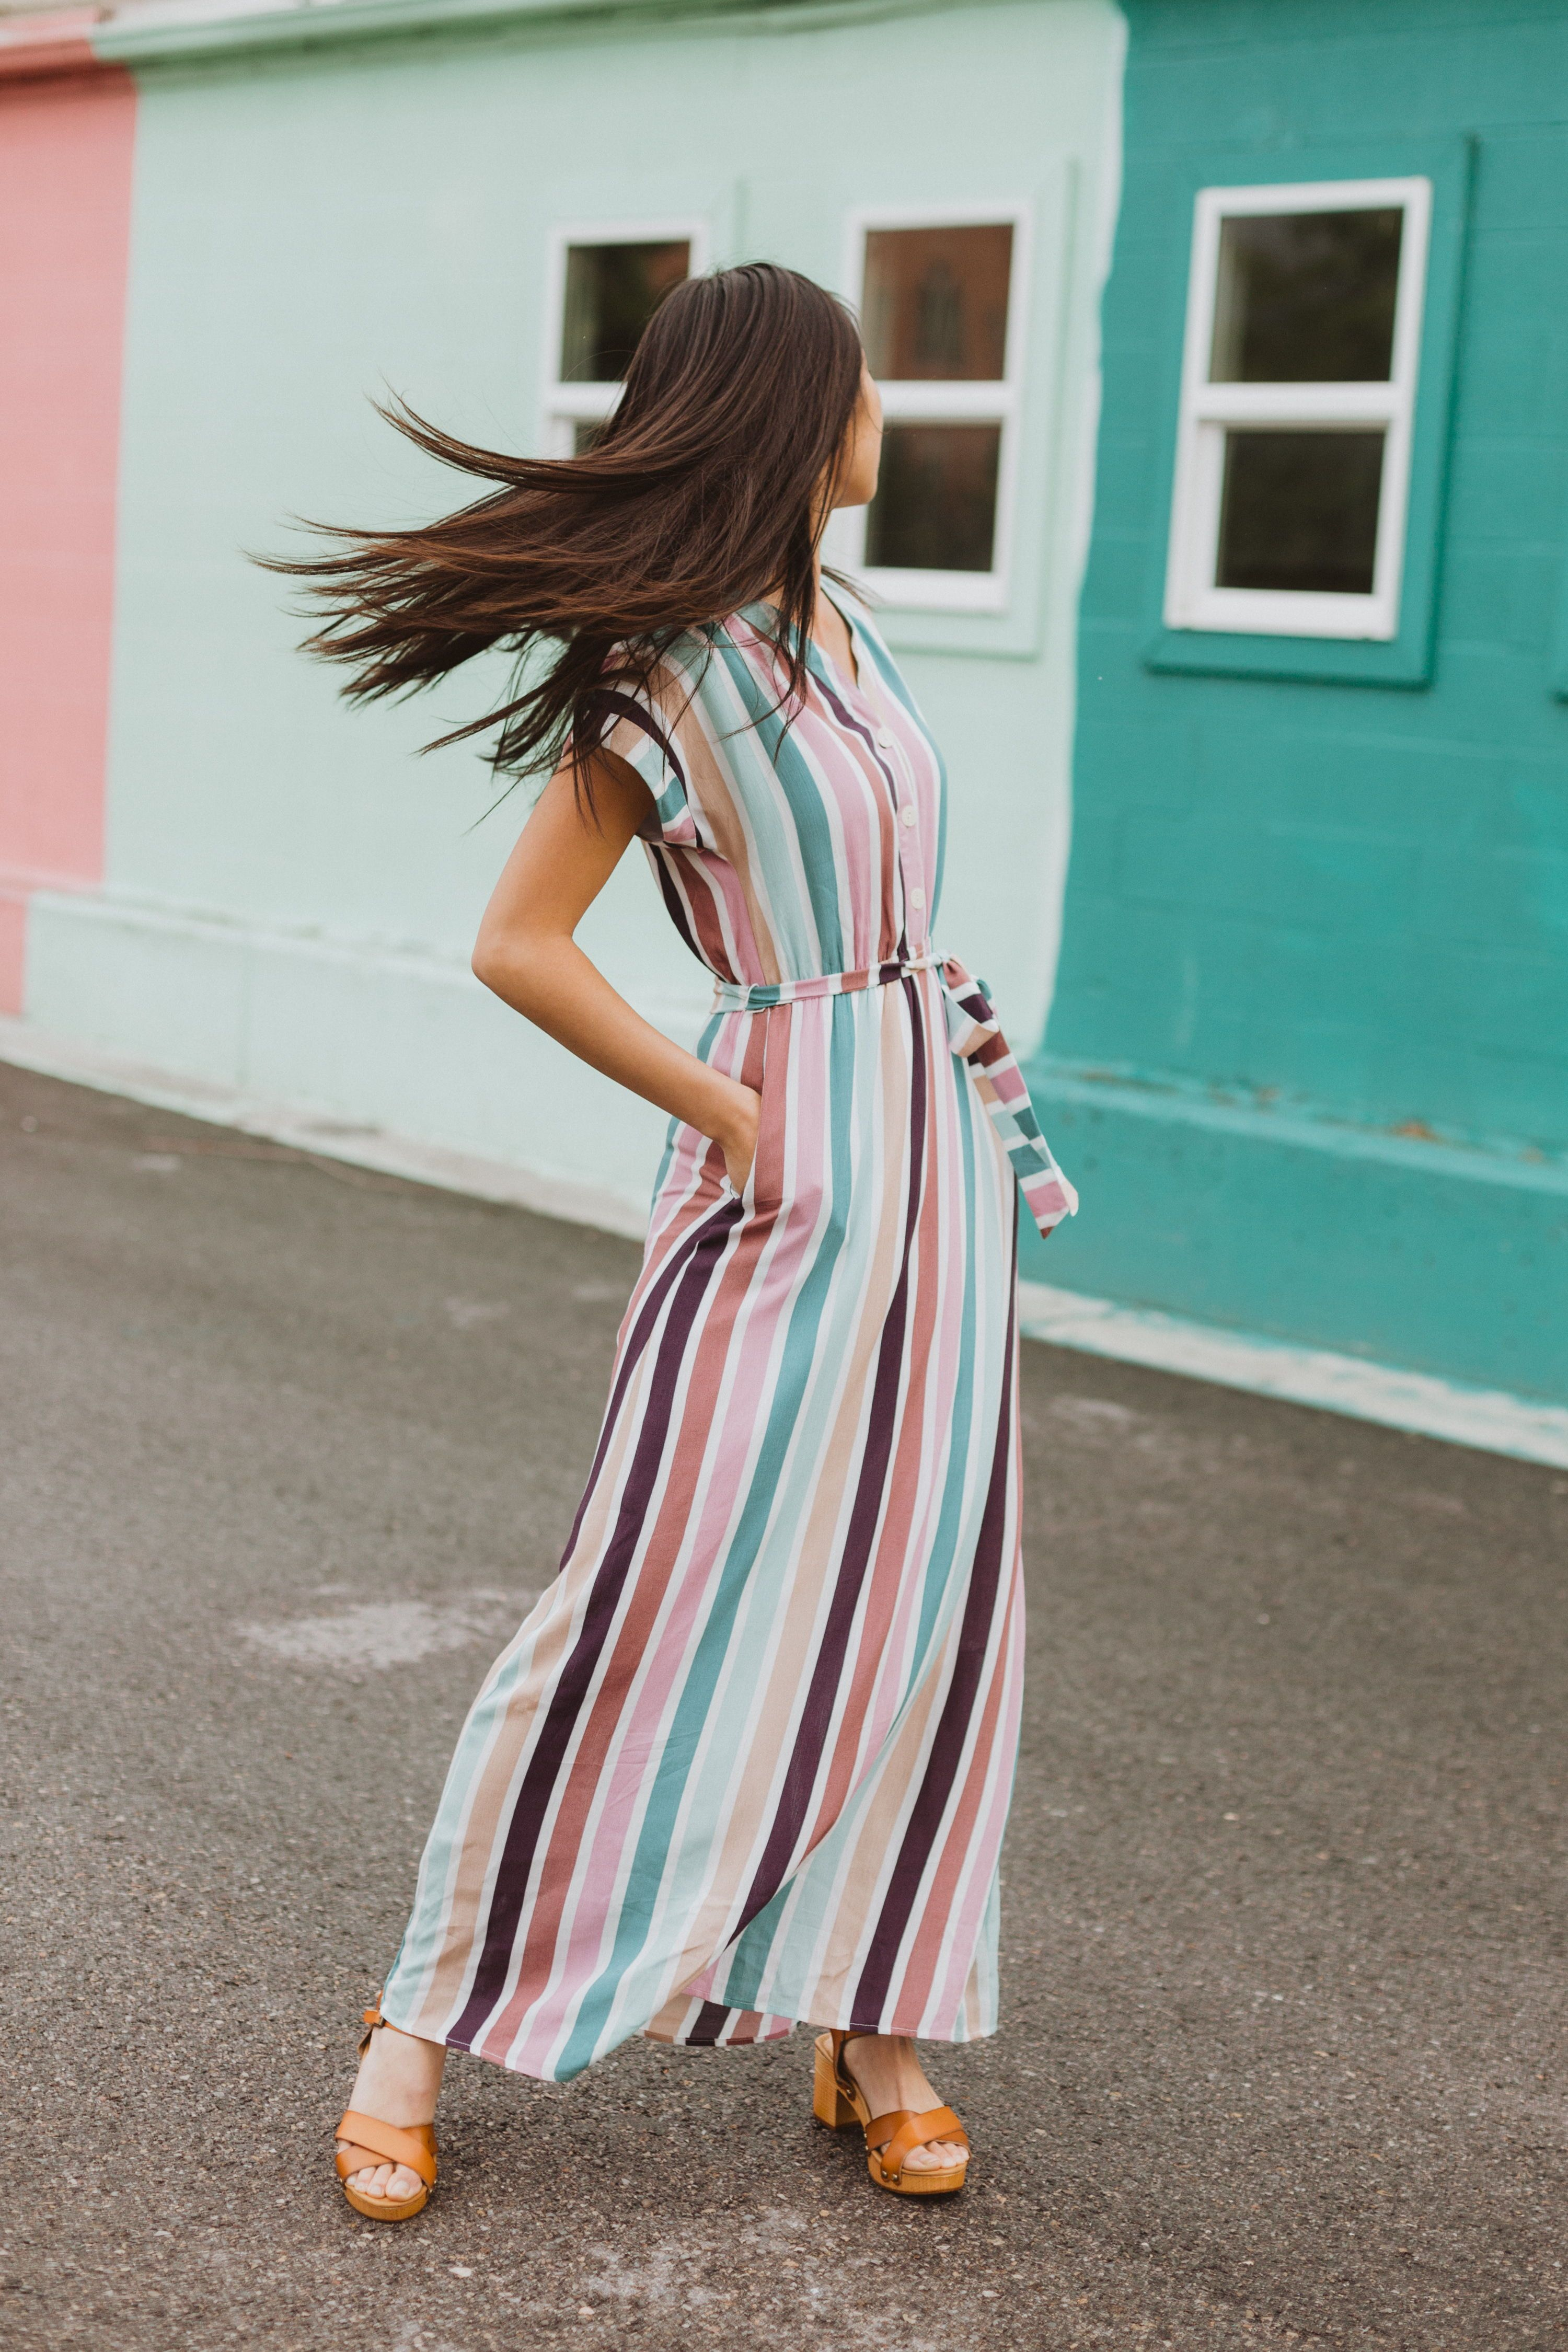 The Cha Cha Striped Maxi Dress Is As If All Your Favorite Things Came Together As A Dress It Striped Dress Outfit Striped Maxi Dresses Vertical Striped Dress [ 4500 x 3000 Pixel ]